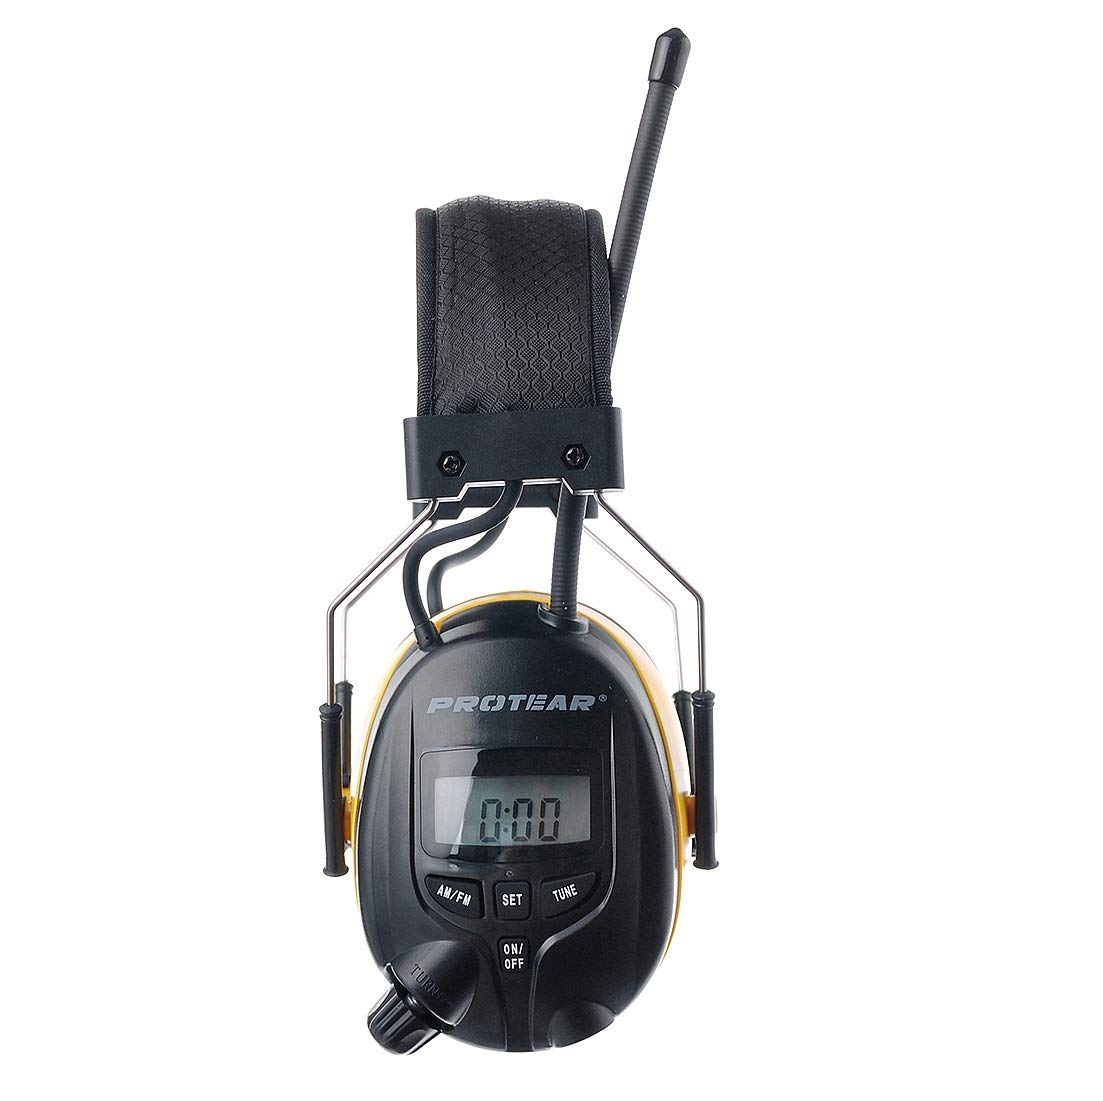 PROTEAR Digital AM FM Radio Headphones, Ear Protection Safety Earmuffs, Electronic Noise Reduction Ear Defender, Perfect for Mowing Working, with a Carring Case by PROTEAR